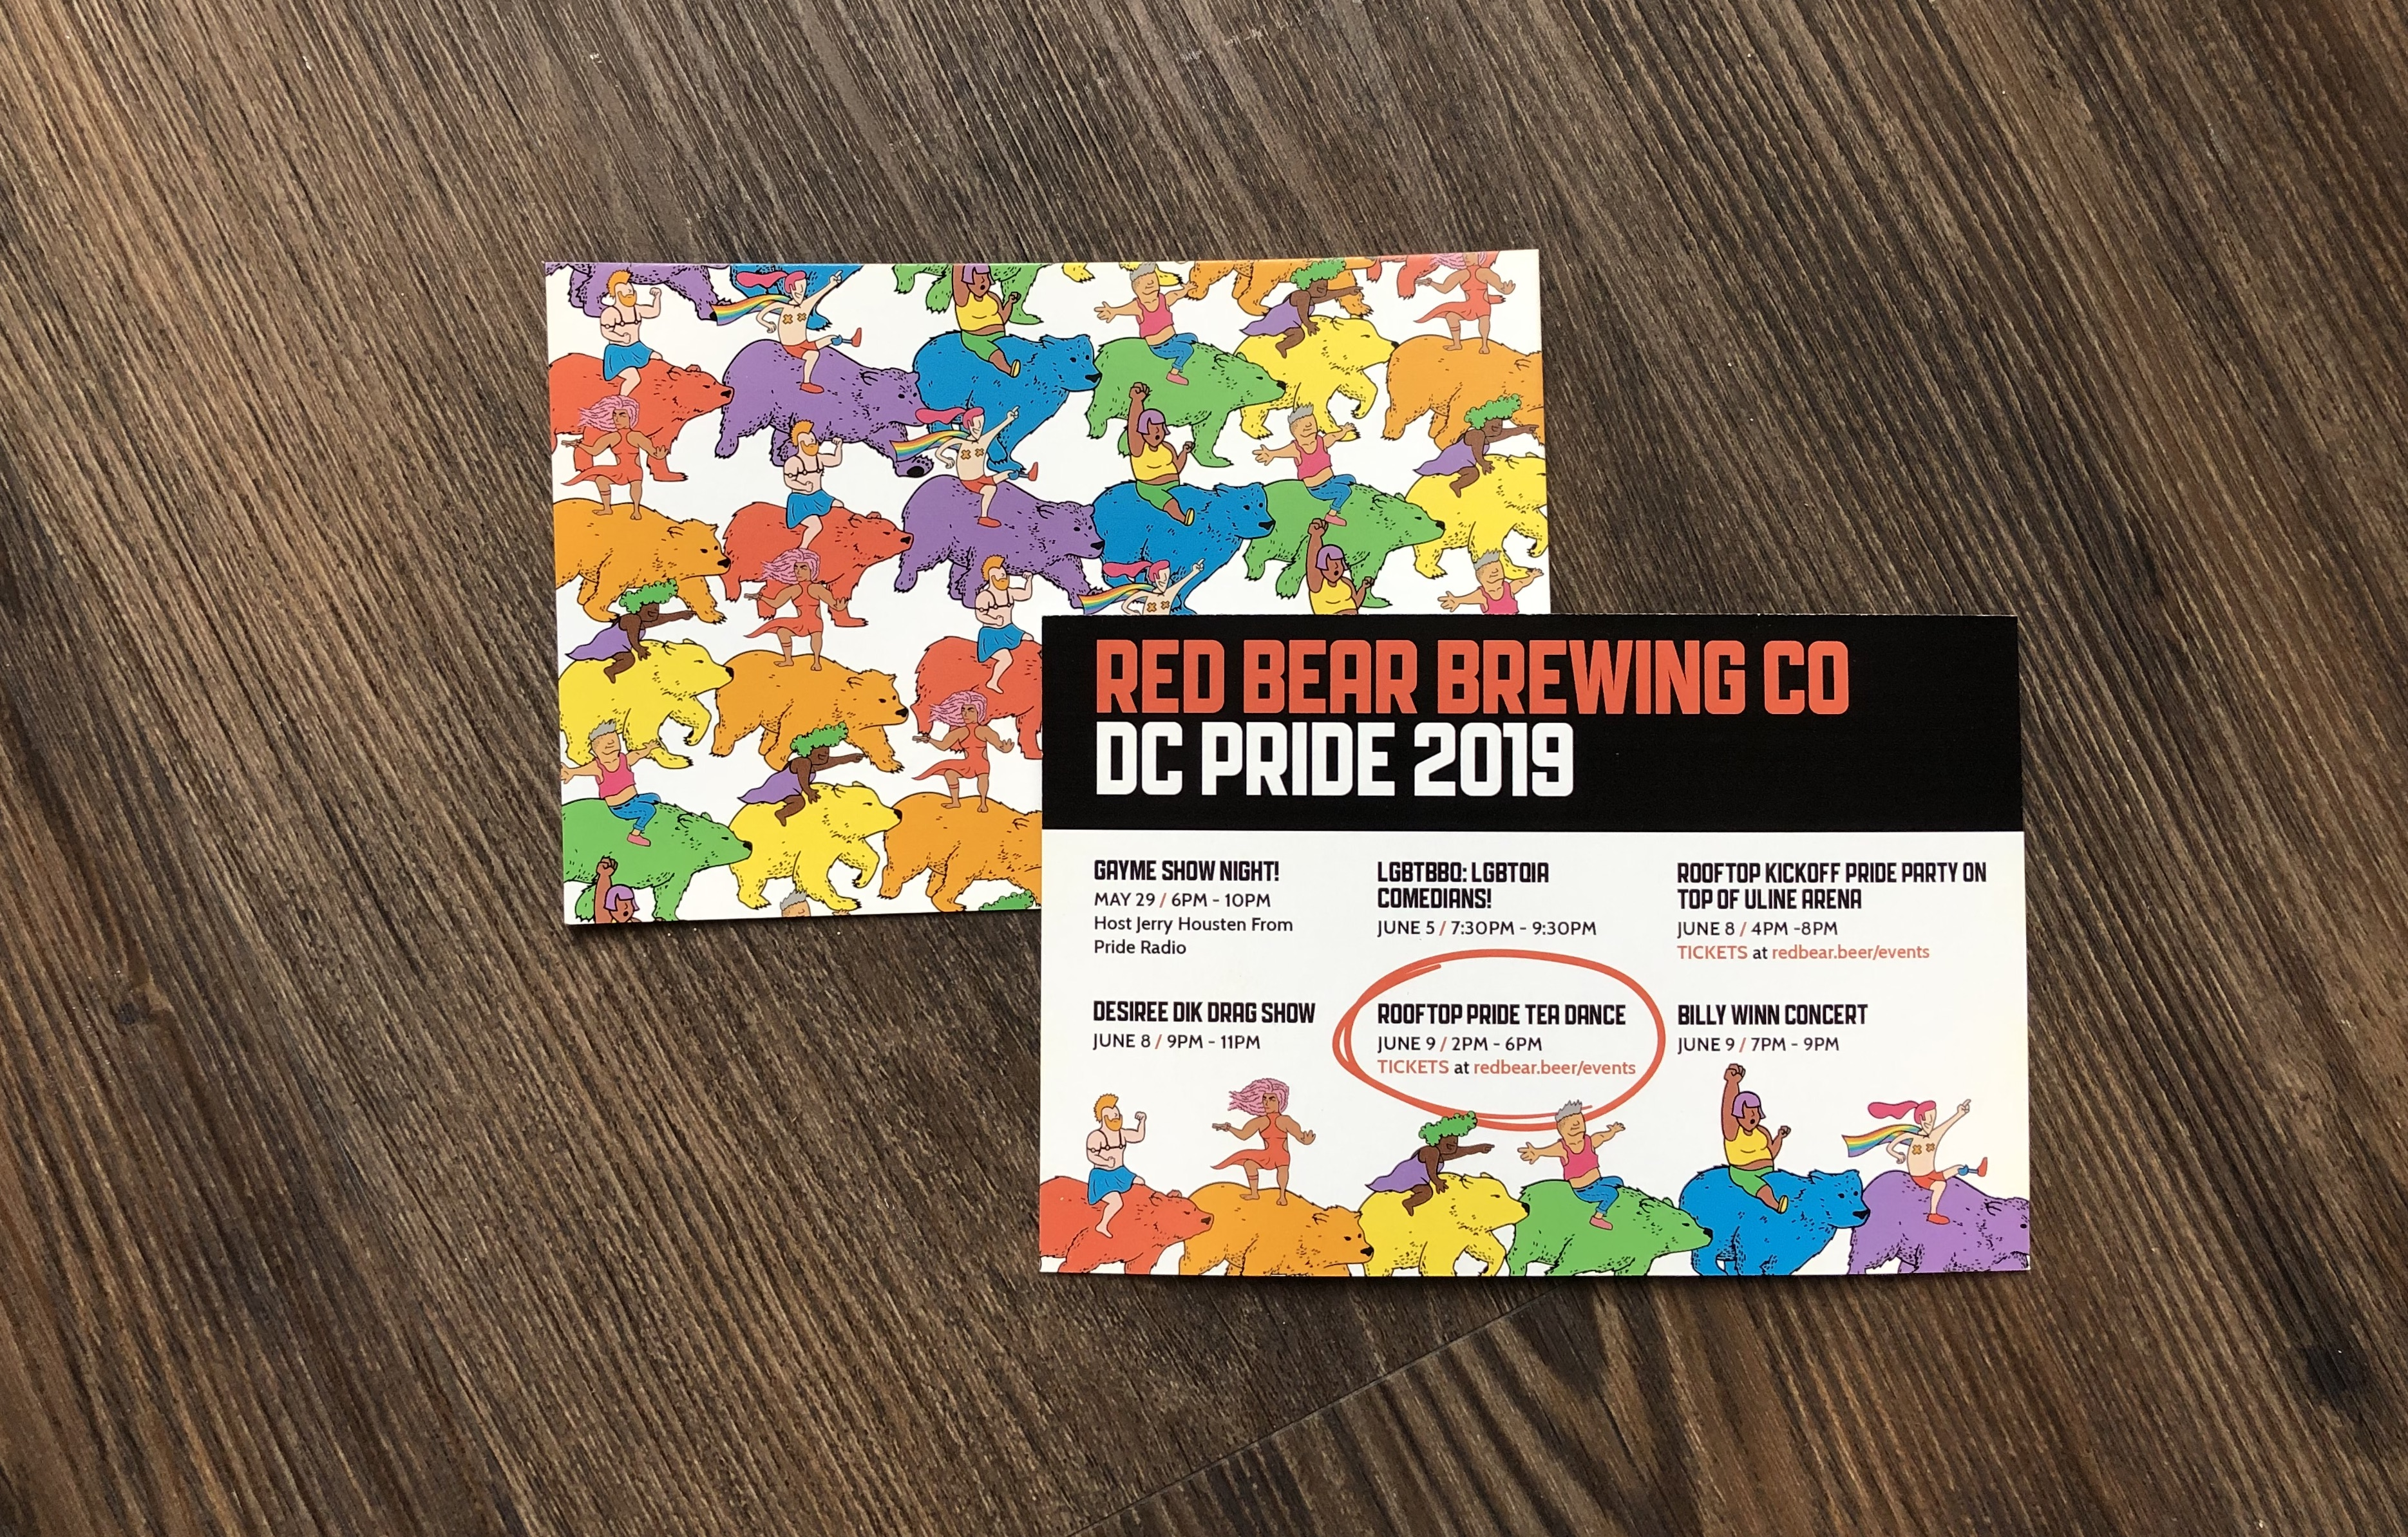 The front and back of a postcard promoting Red Bear's pride week events